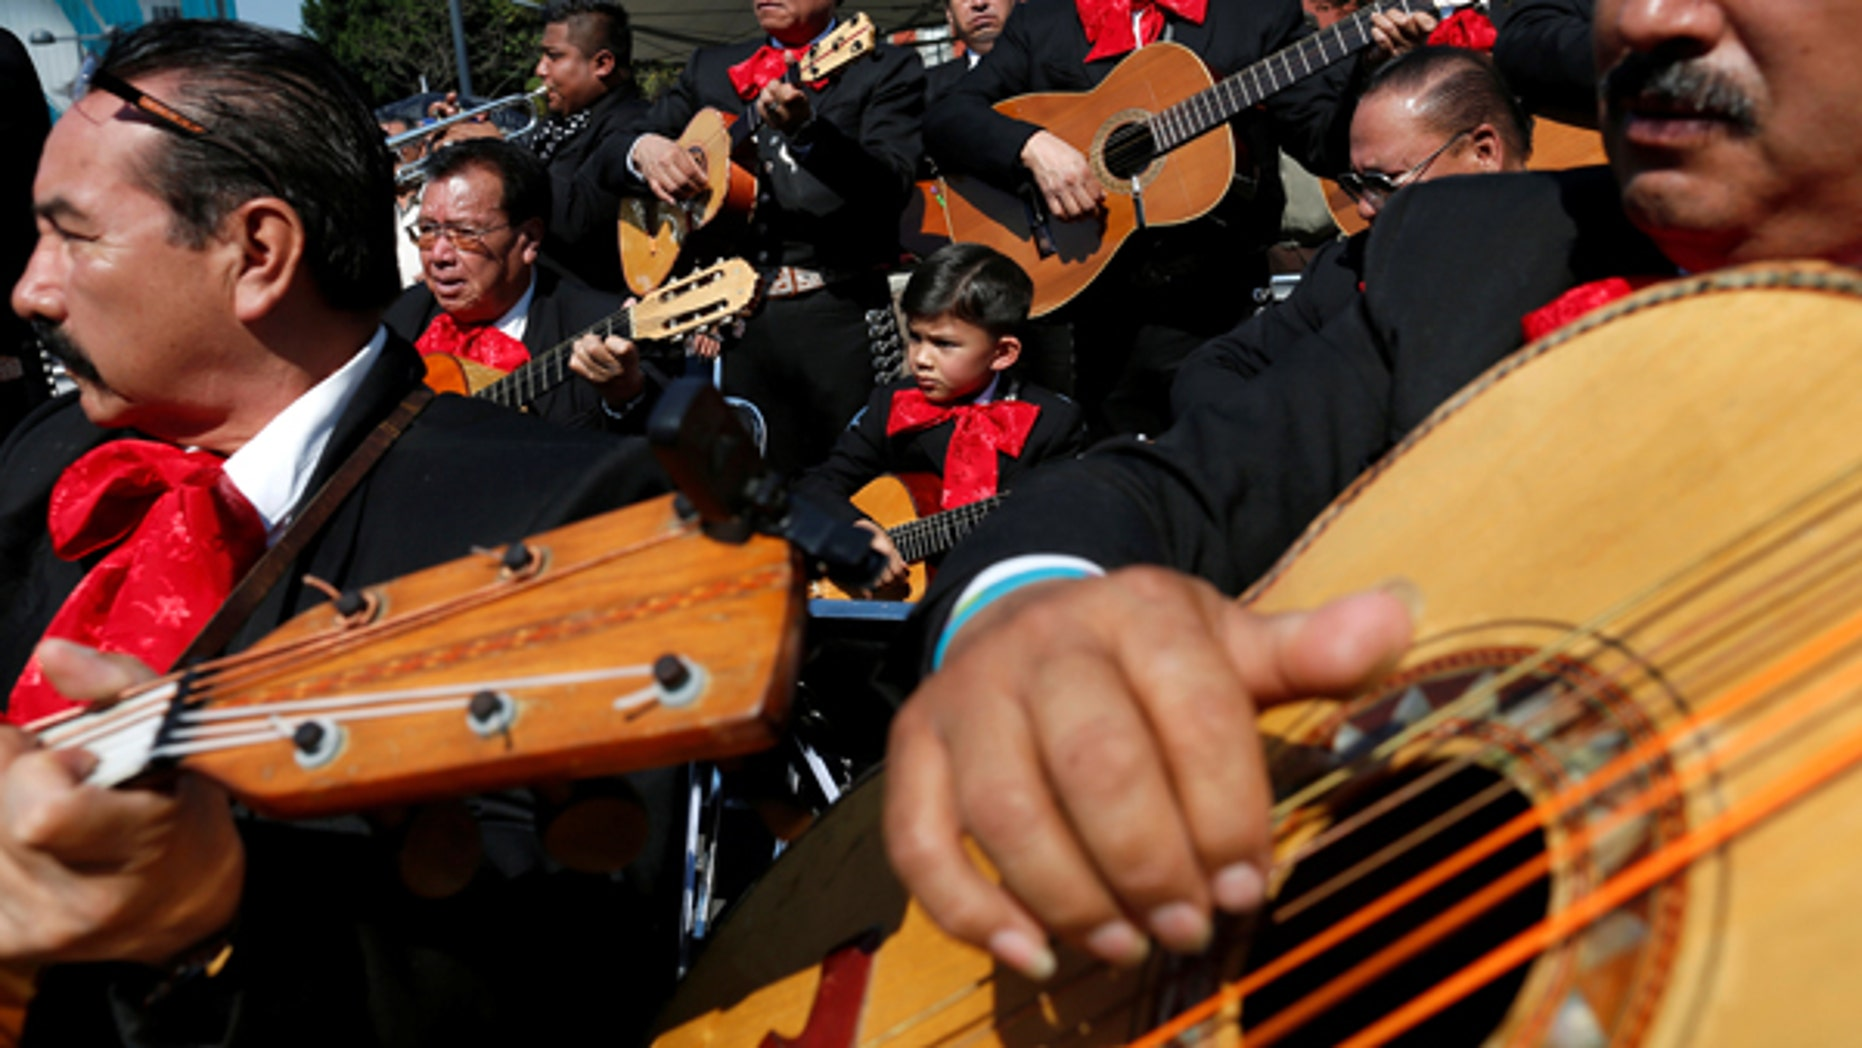 Mexico's police are hoping forming a mariachi band -- like one seen above playing in Mexico City on November 22, 2016 -- will help improve their reputation with countrymen.